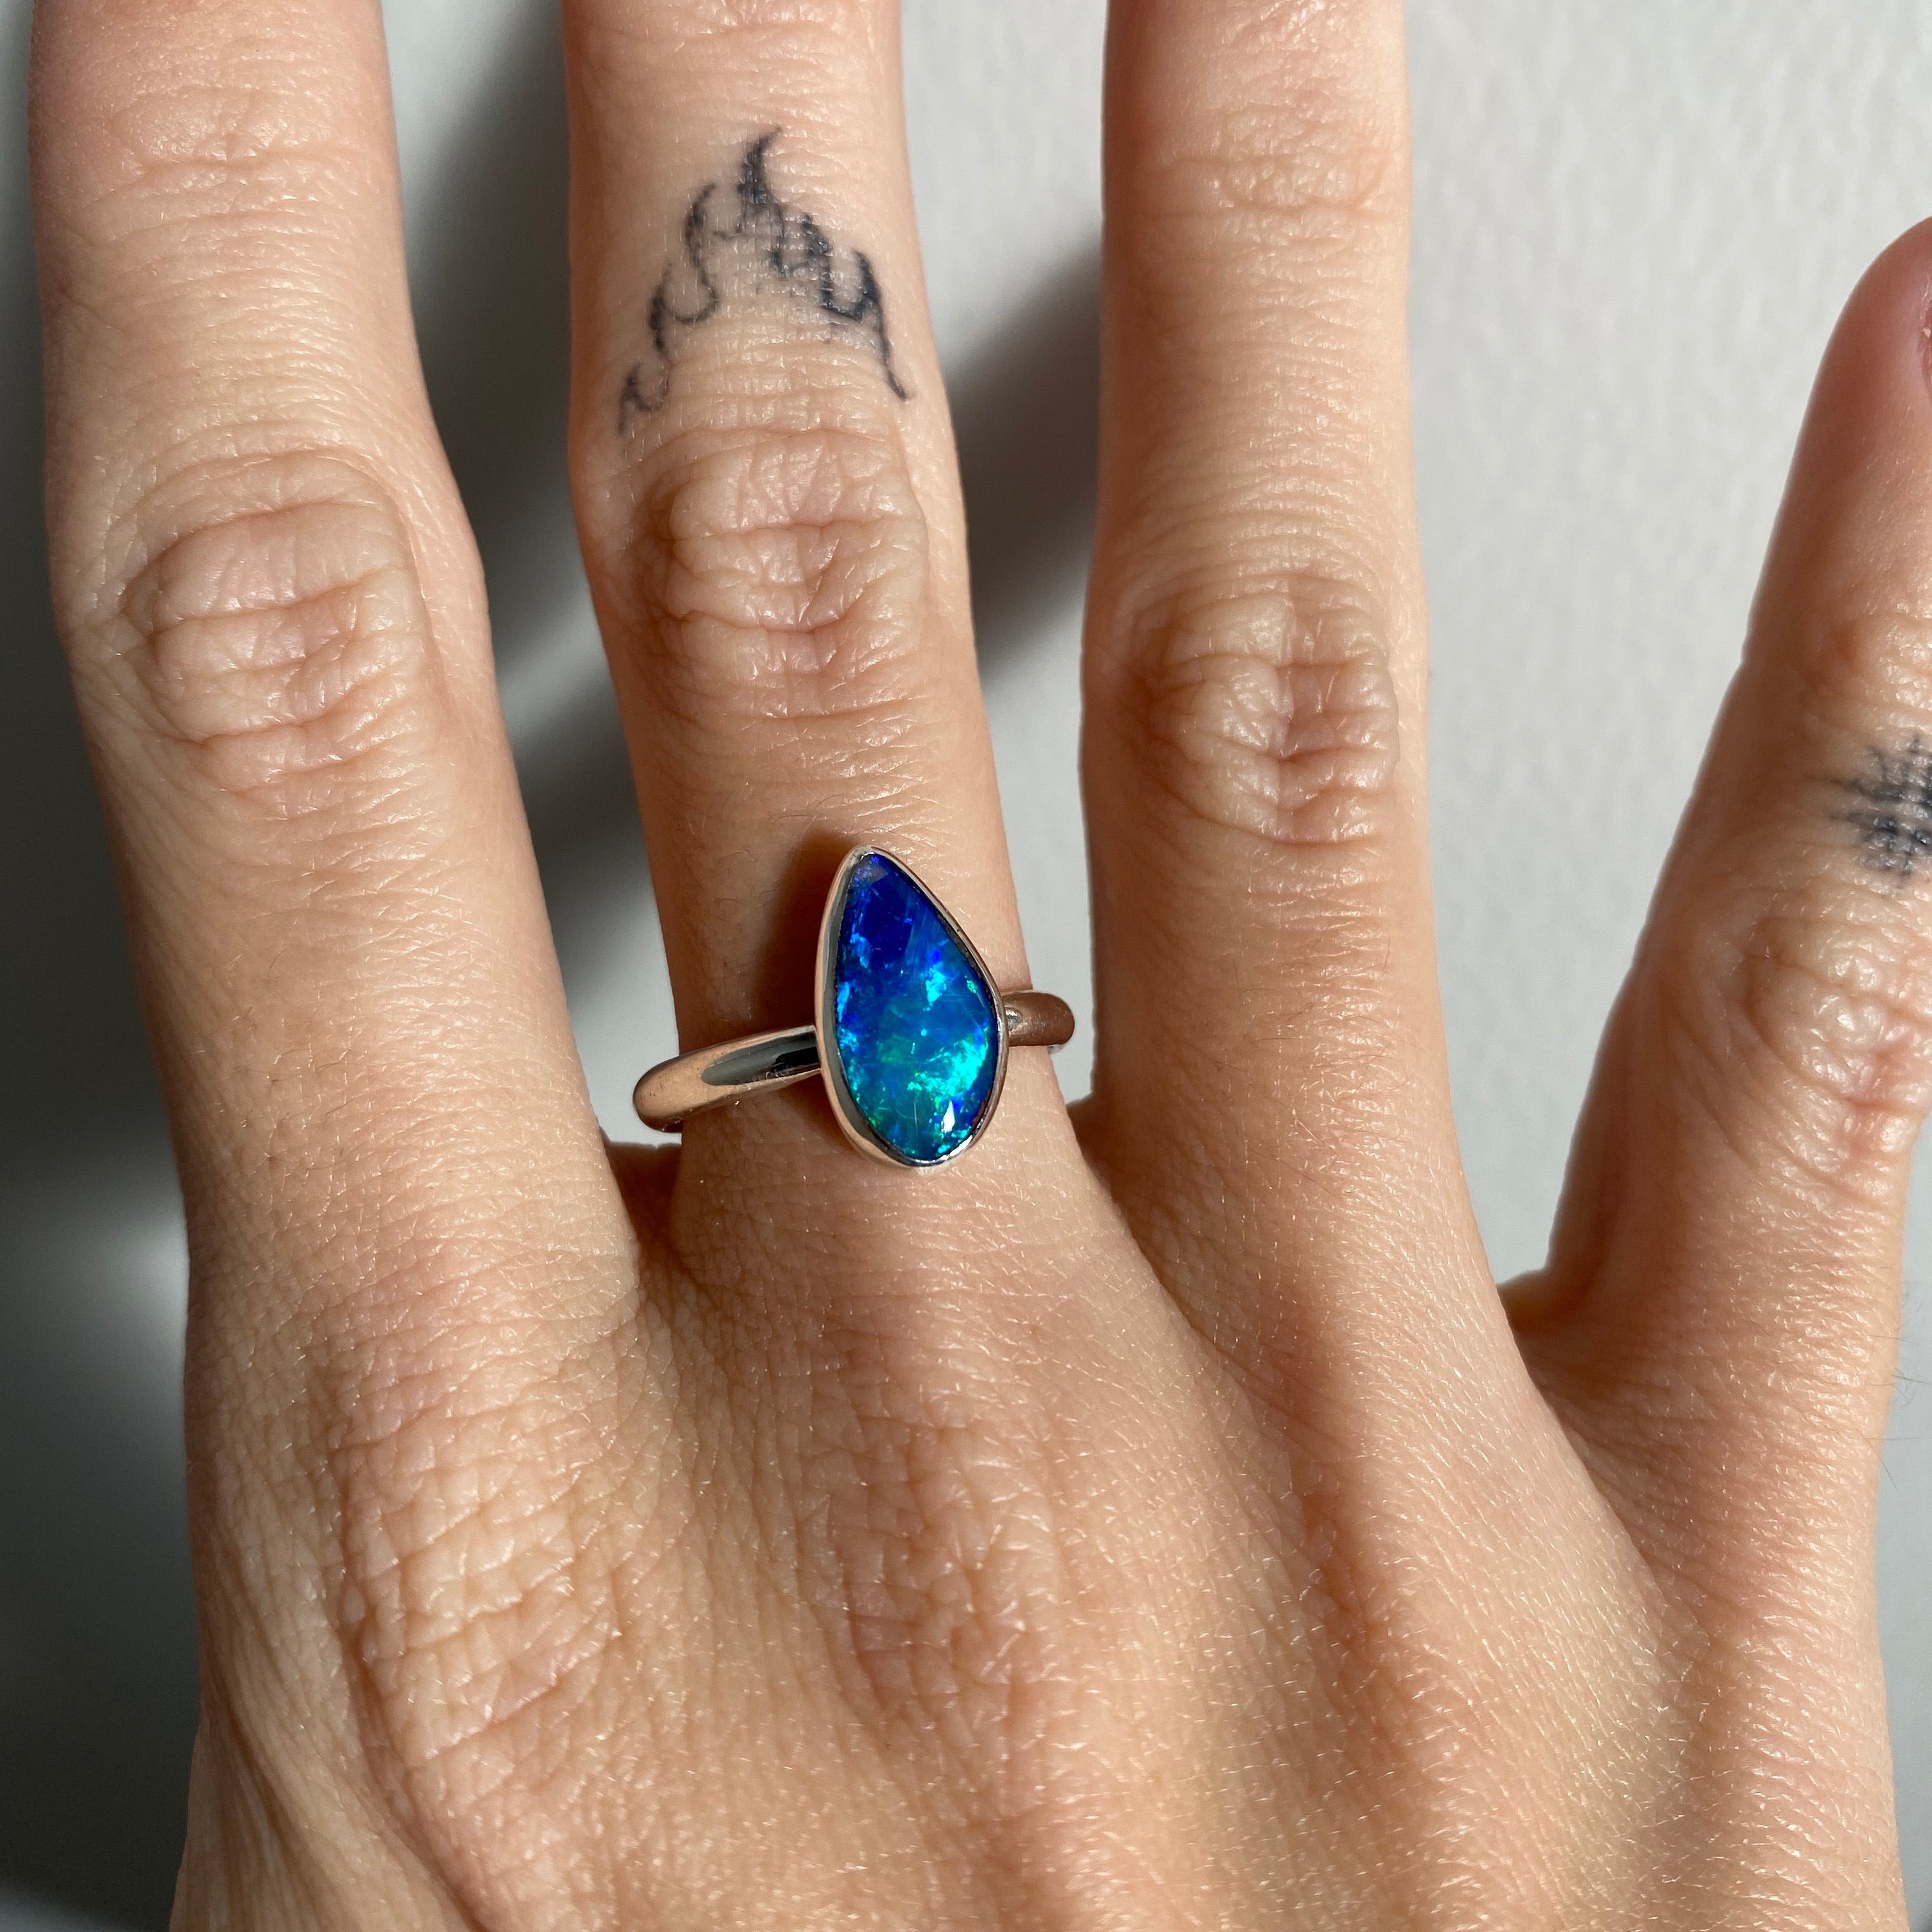 Opal Ring - Size M (6.5)